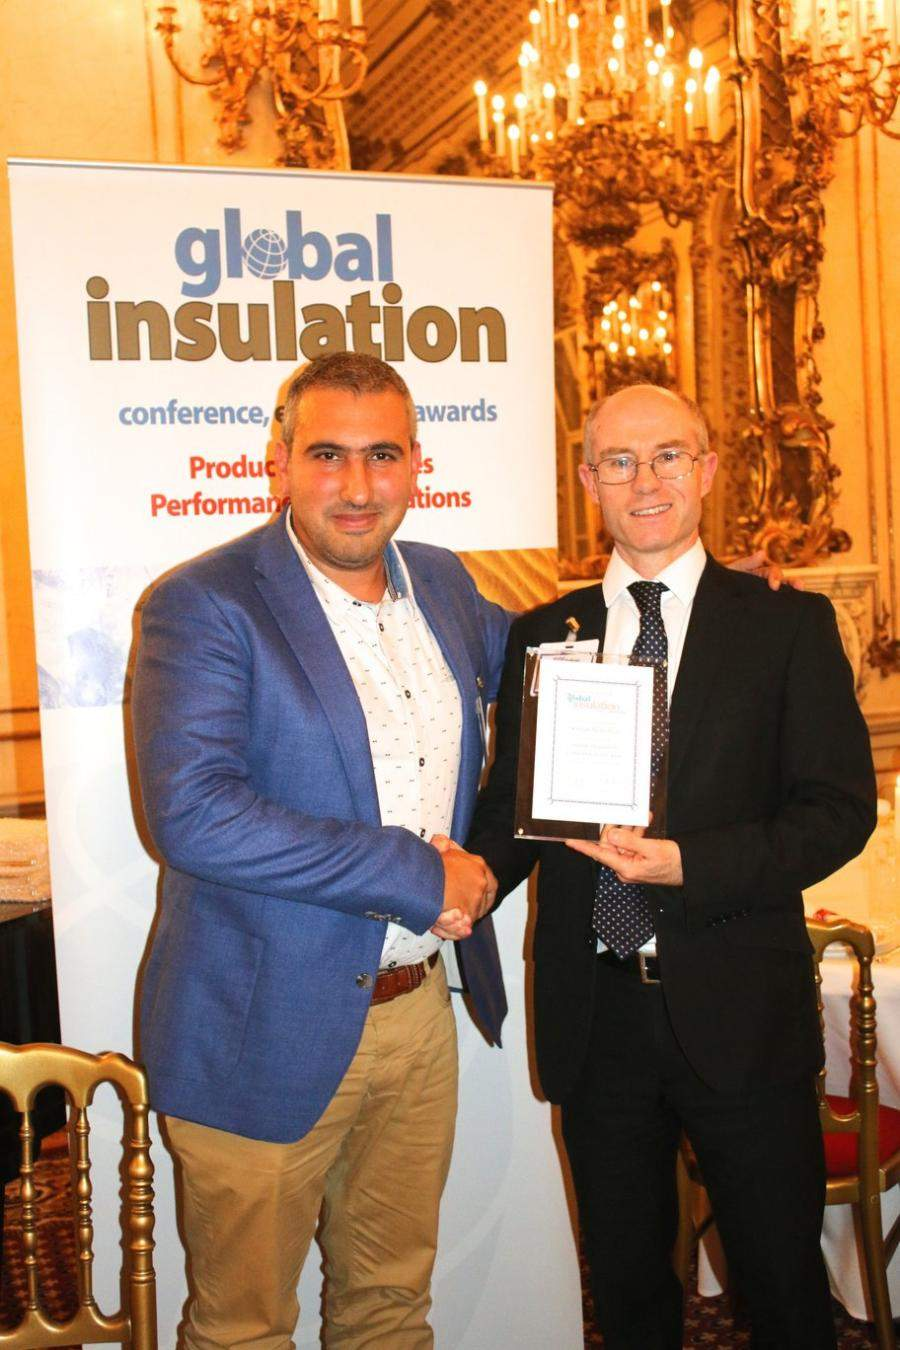 Davide Maiello neemt award Global Insulation Company of the Year 2018 in ontvangst namens Knauf Insulation